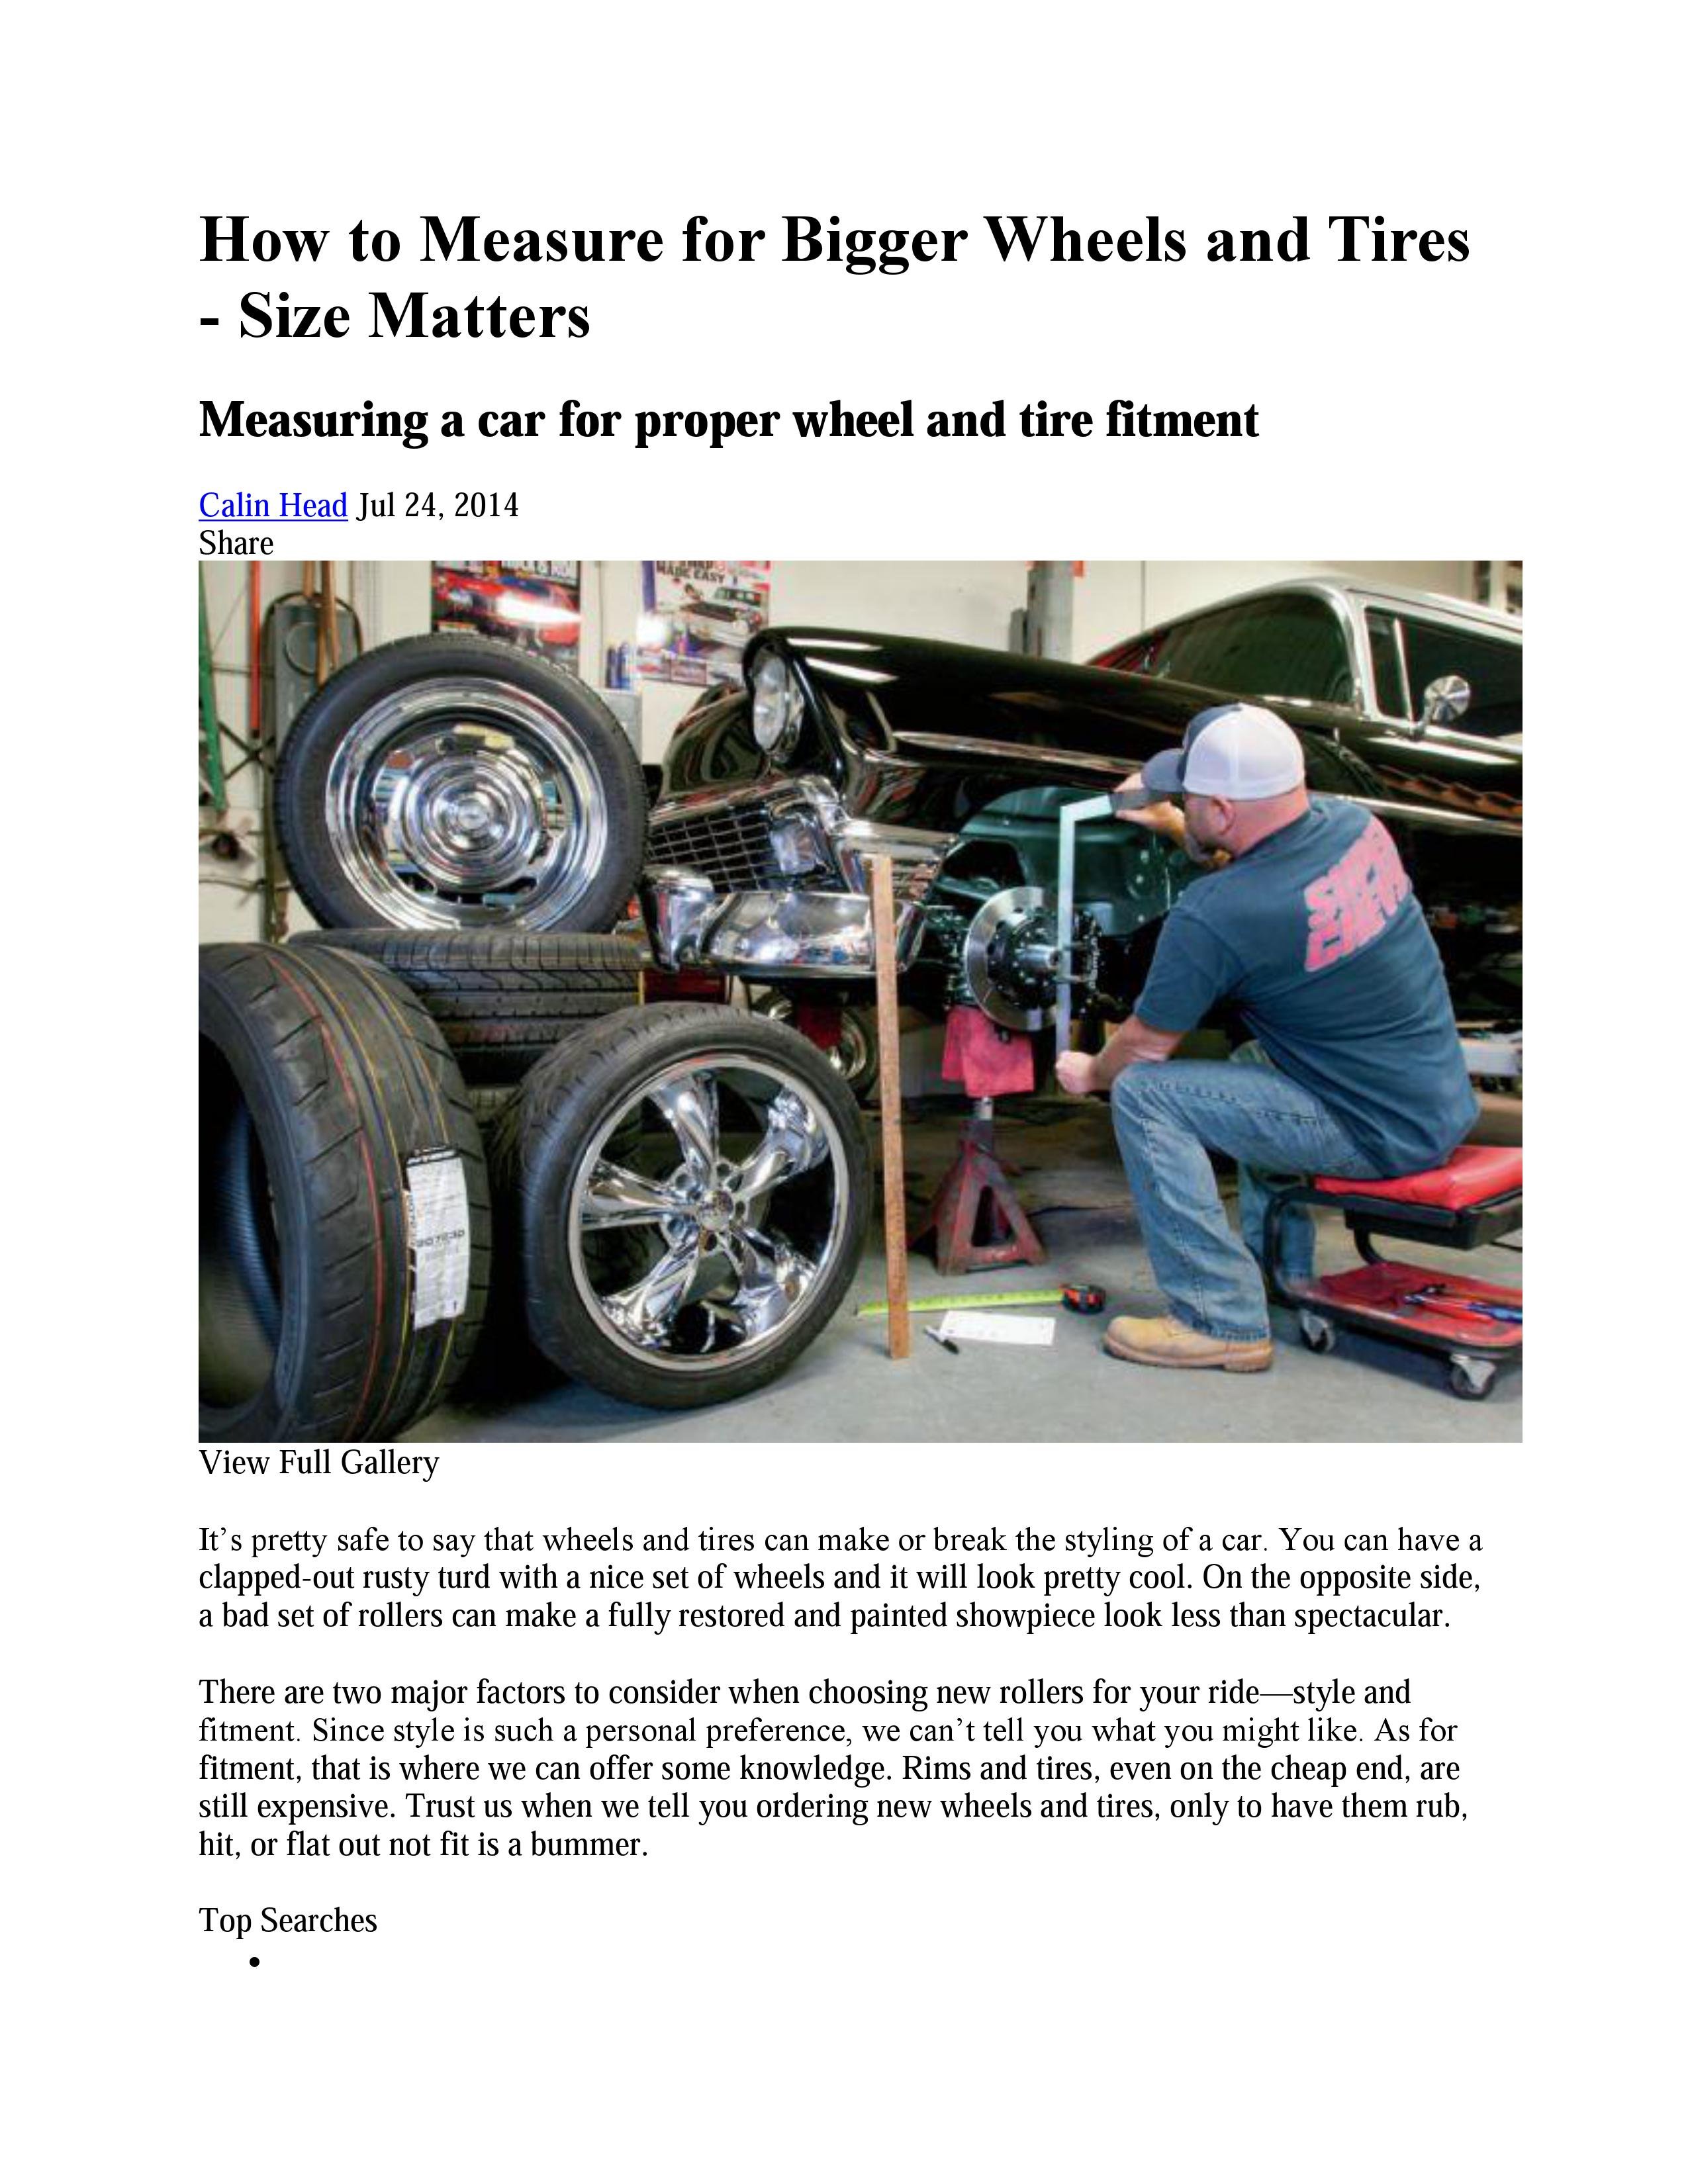 How To Measure For Bigger Wheels And Tires Size Matters Part 1